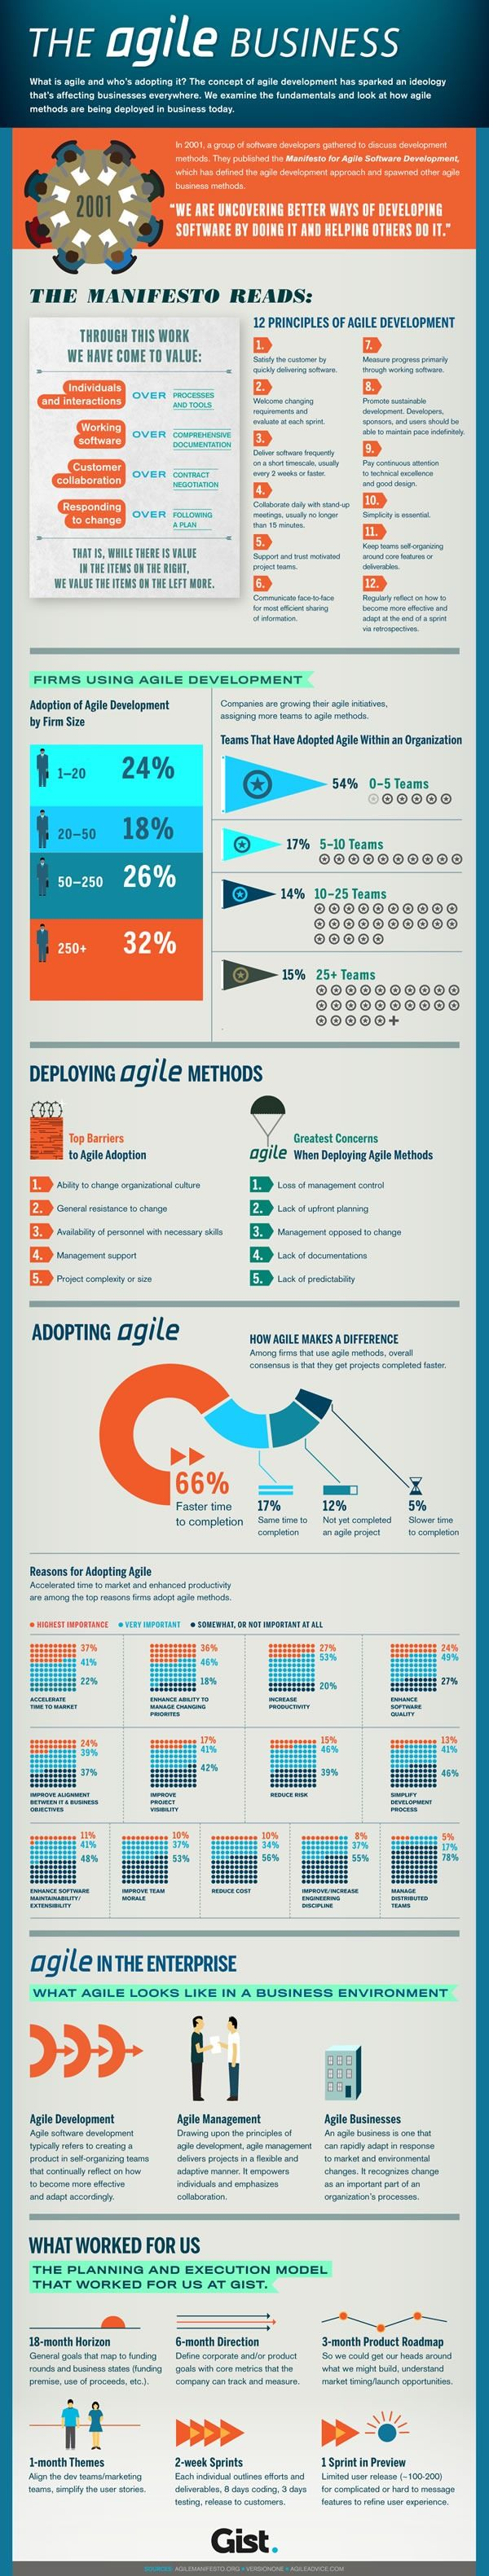 Should Your Business Go Agile? (Infographic)